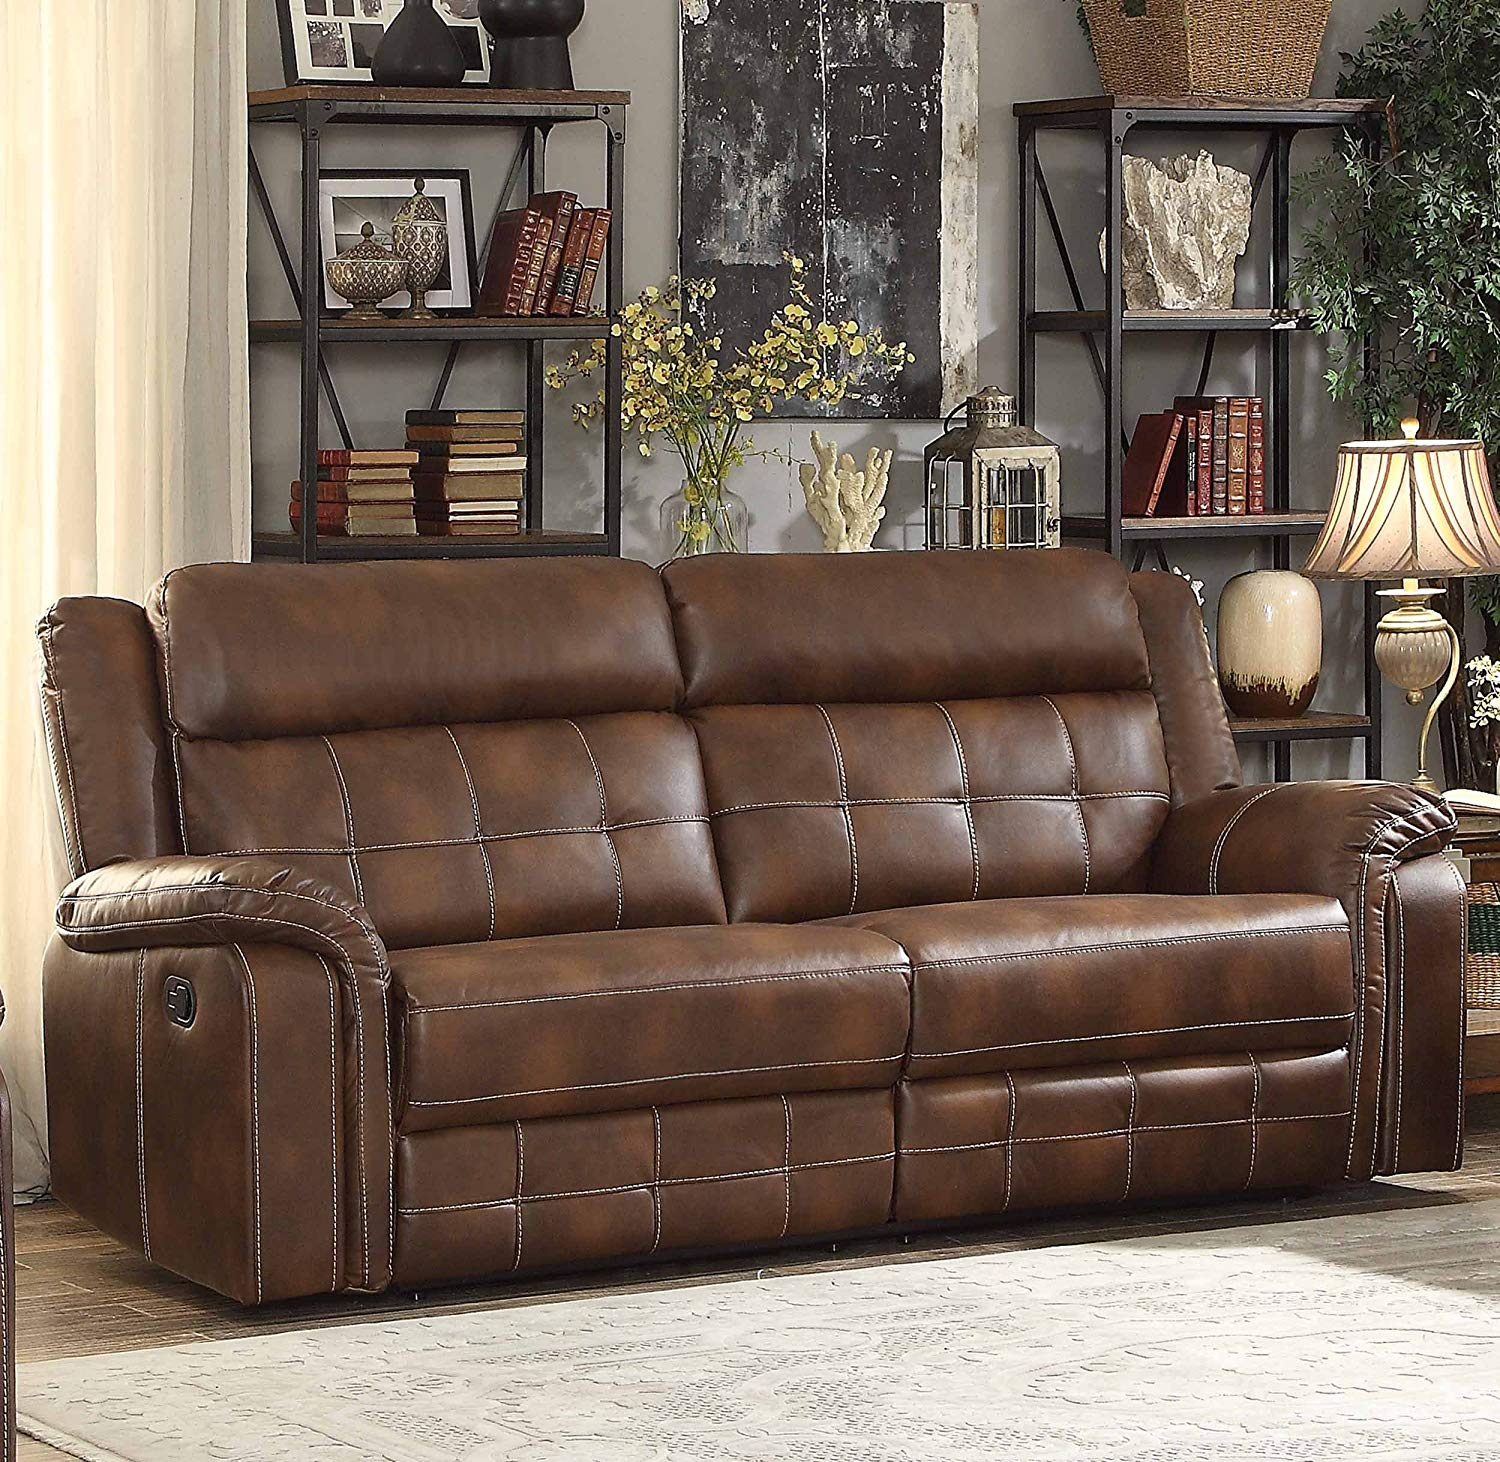 Cheap Couch Sets Online: 25 Cheap Recliner Sofa Sets That Are Available Online